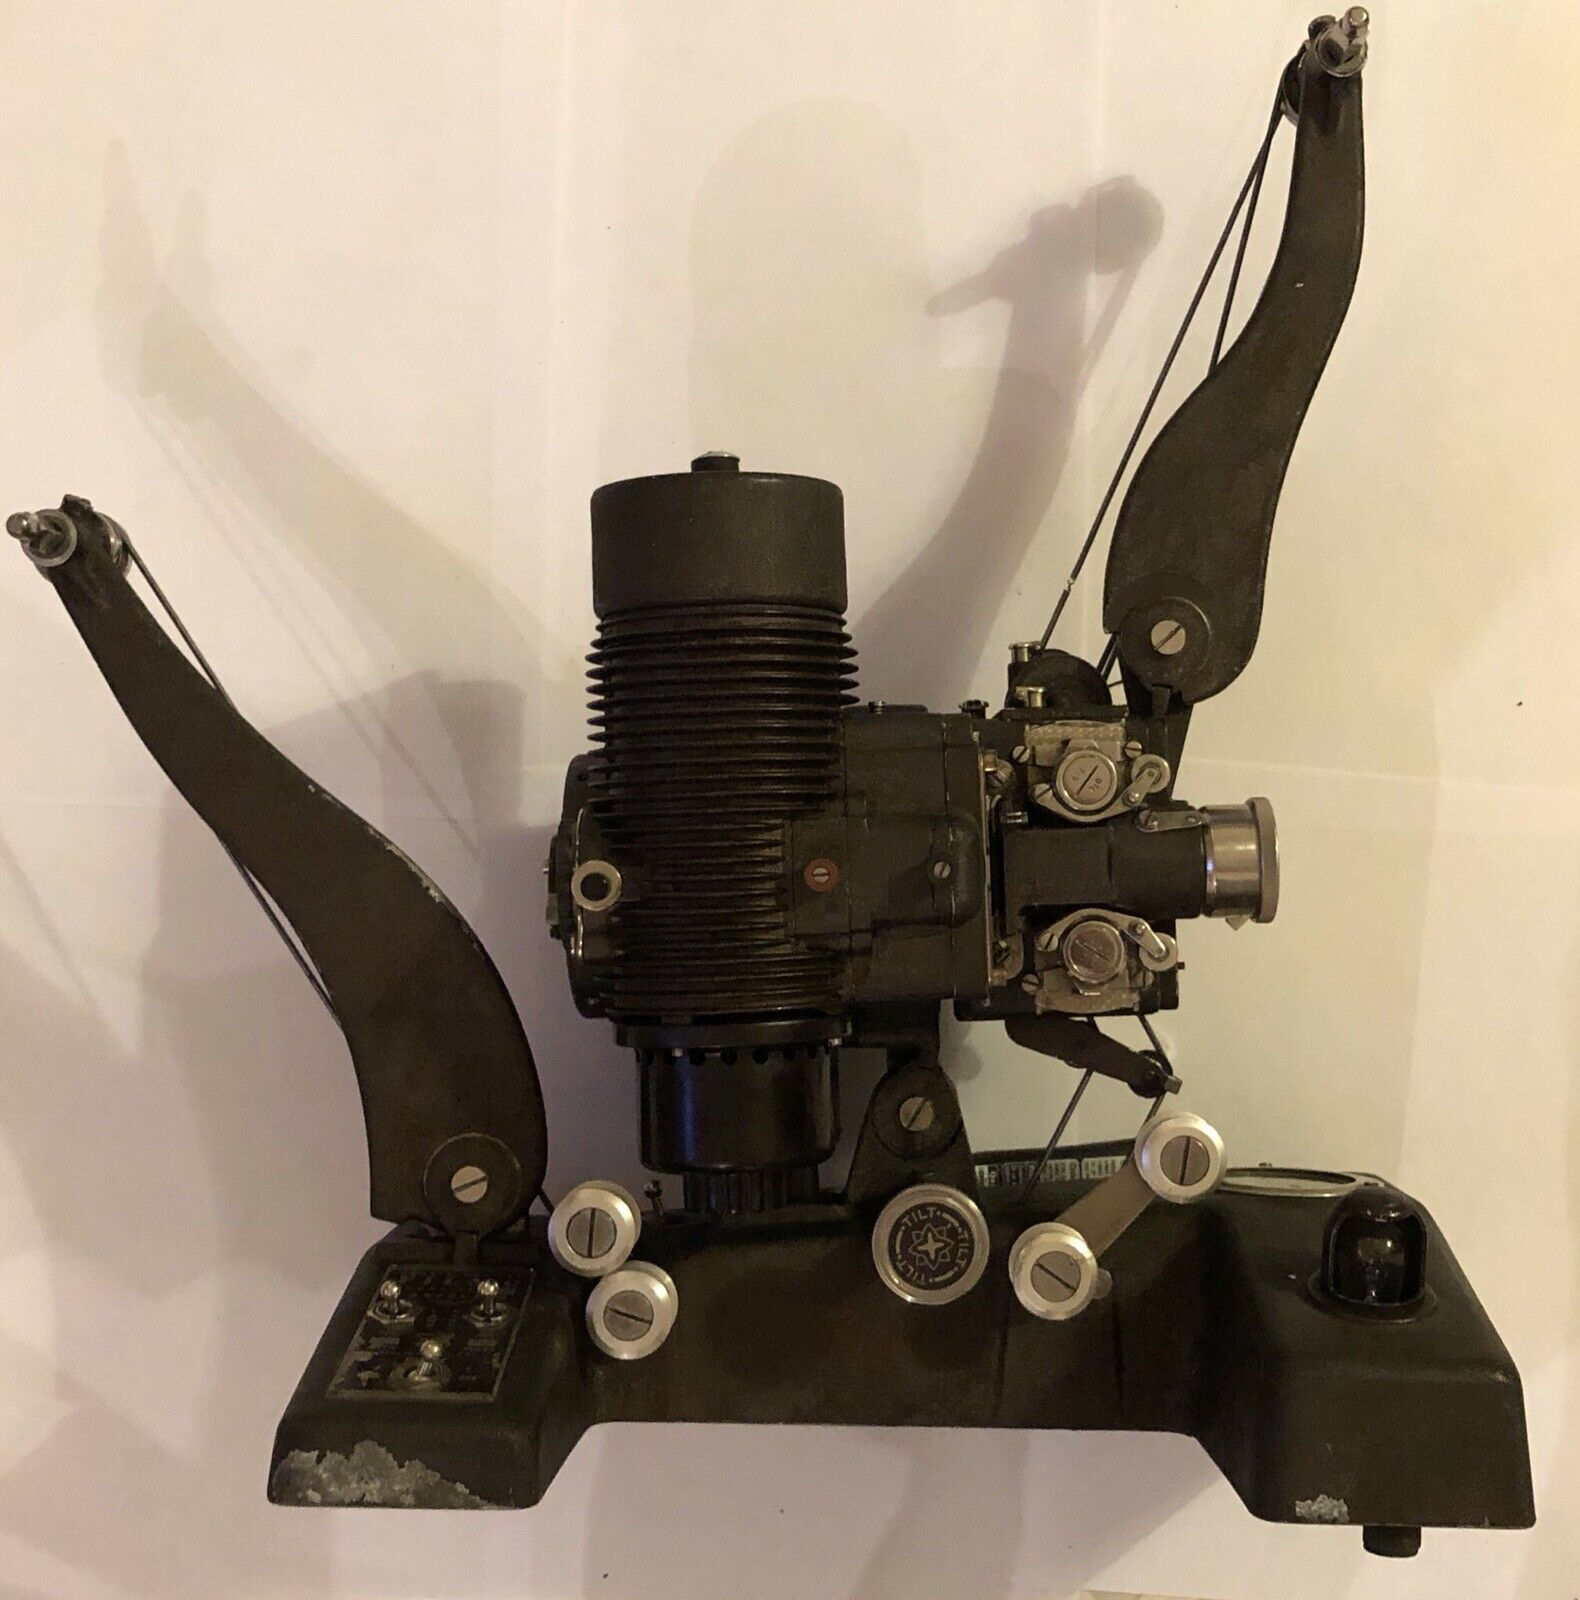 B&H Filmo 129D silent projector (late 1930s)